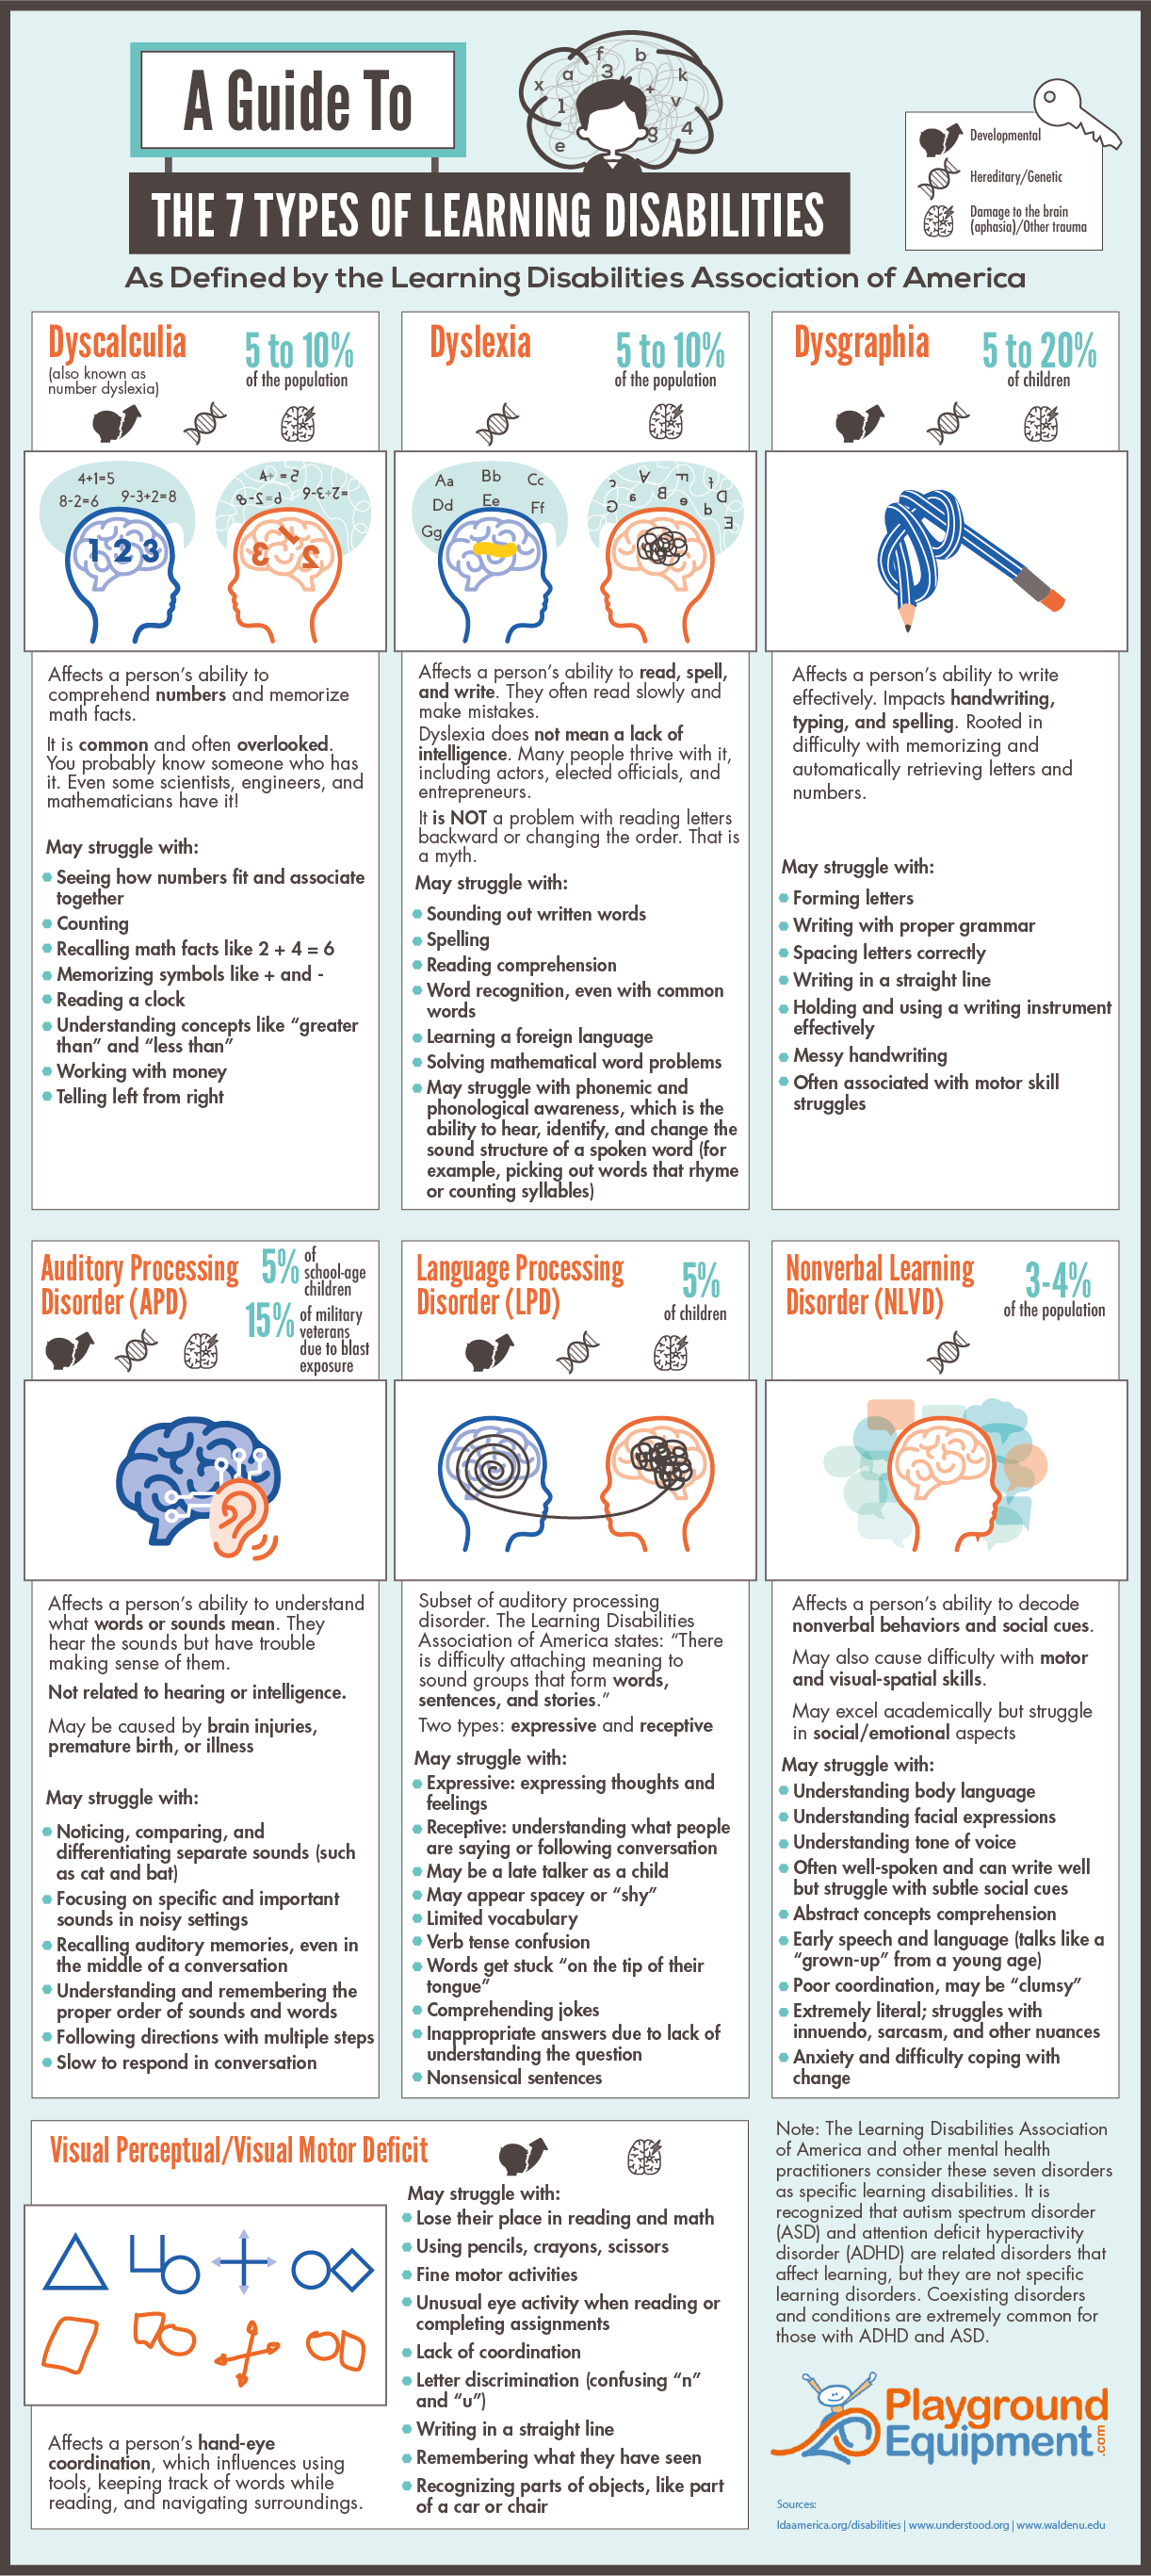 A Guide To the 7 Types of Learning Disabilities